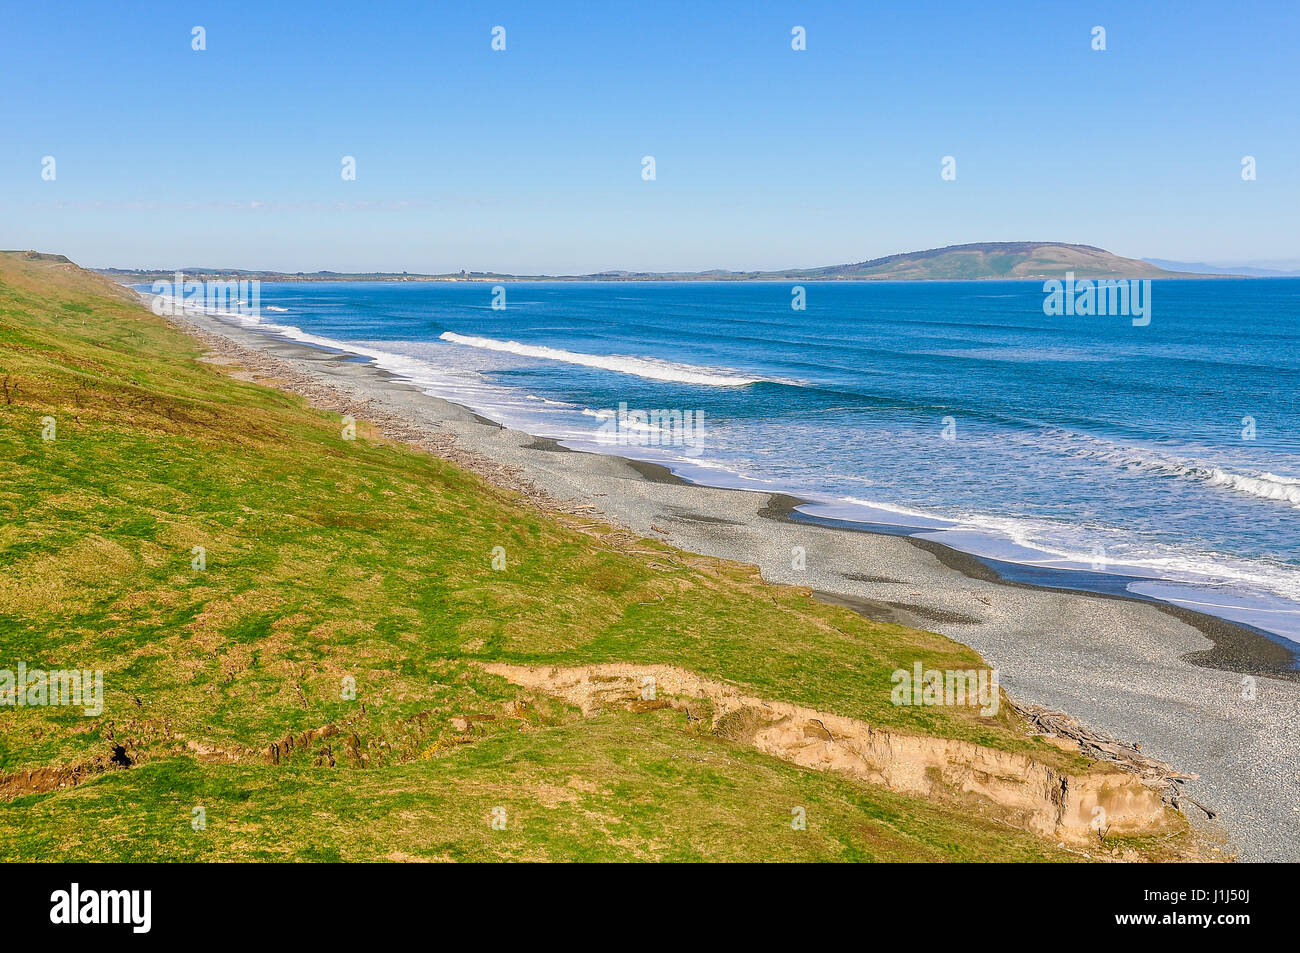 Rough coastal landscape in the Southern Scenic Route, New Zealand - Stock Image